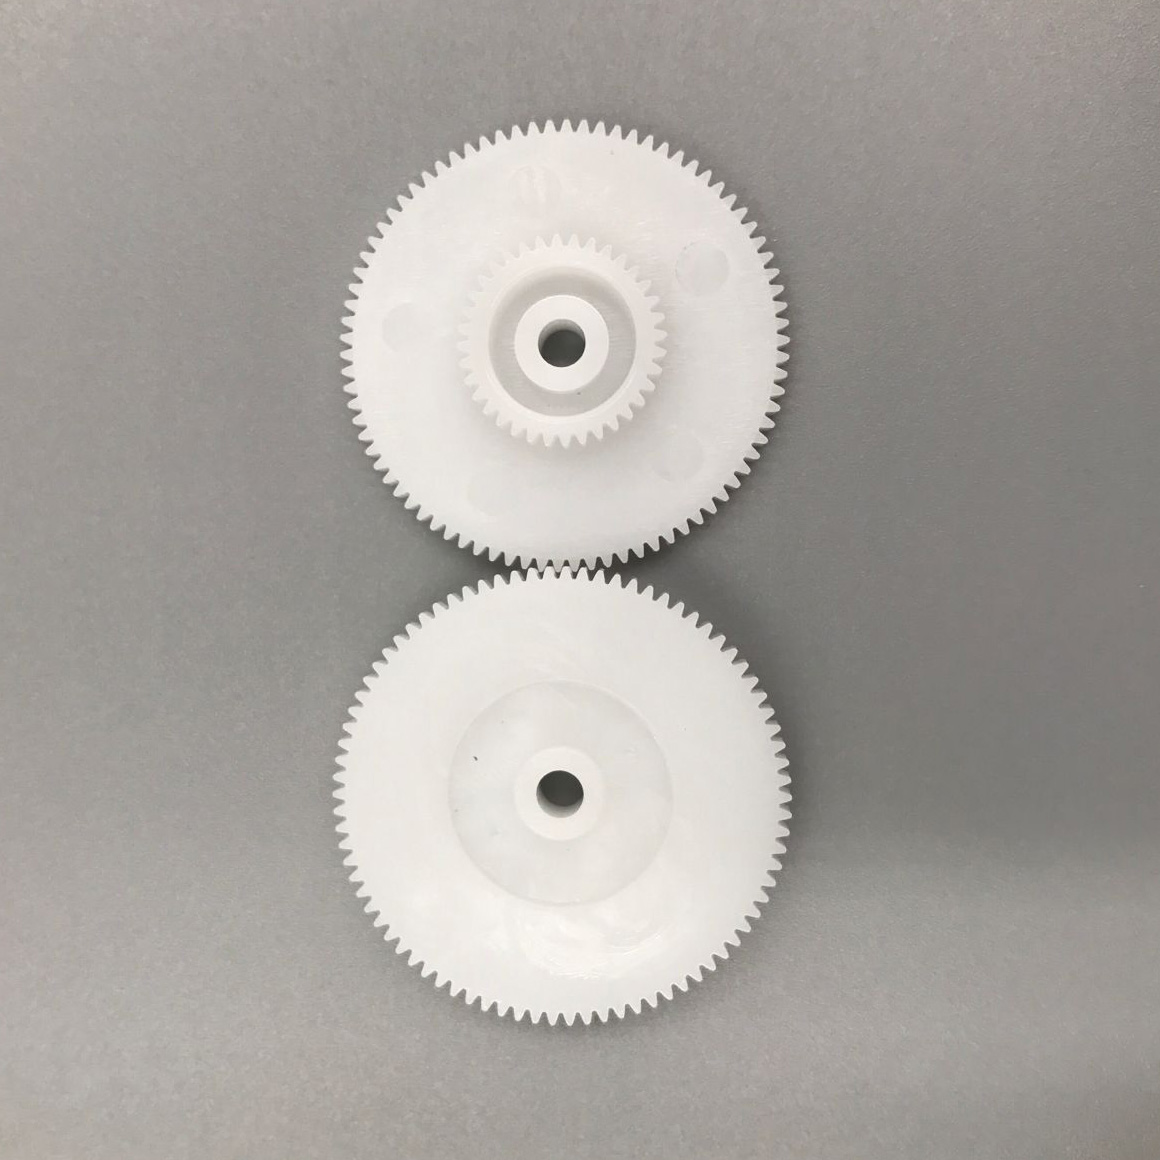 brand new mettler toldeo 3600 and 8442 Middle Gear for Toledo 3600 3650 3680 3950 Electronic Scale